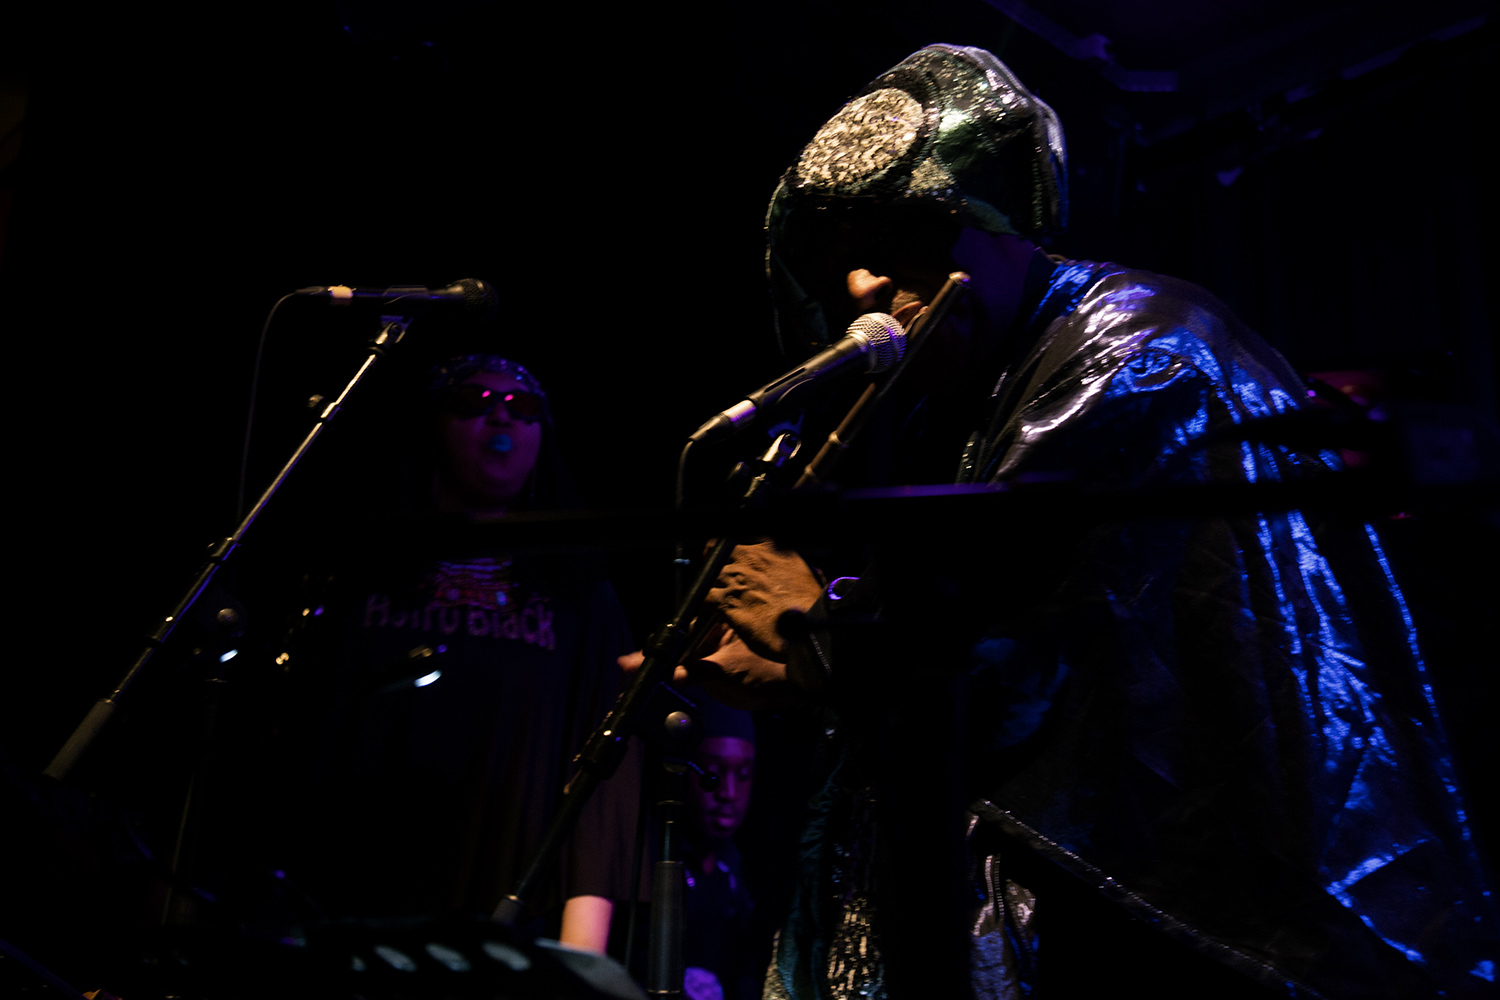 Sun Ra Arkestra directed by Marshall Allen by Laurent Orseau - Concert - Les Ateliers Claus - Brussels, Belgium #30